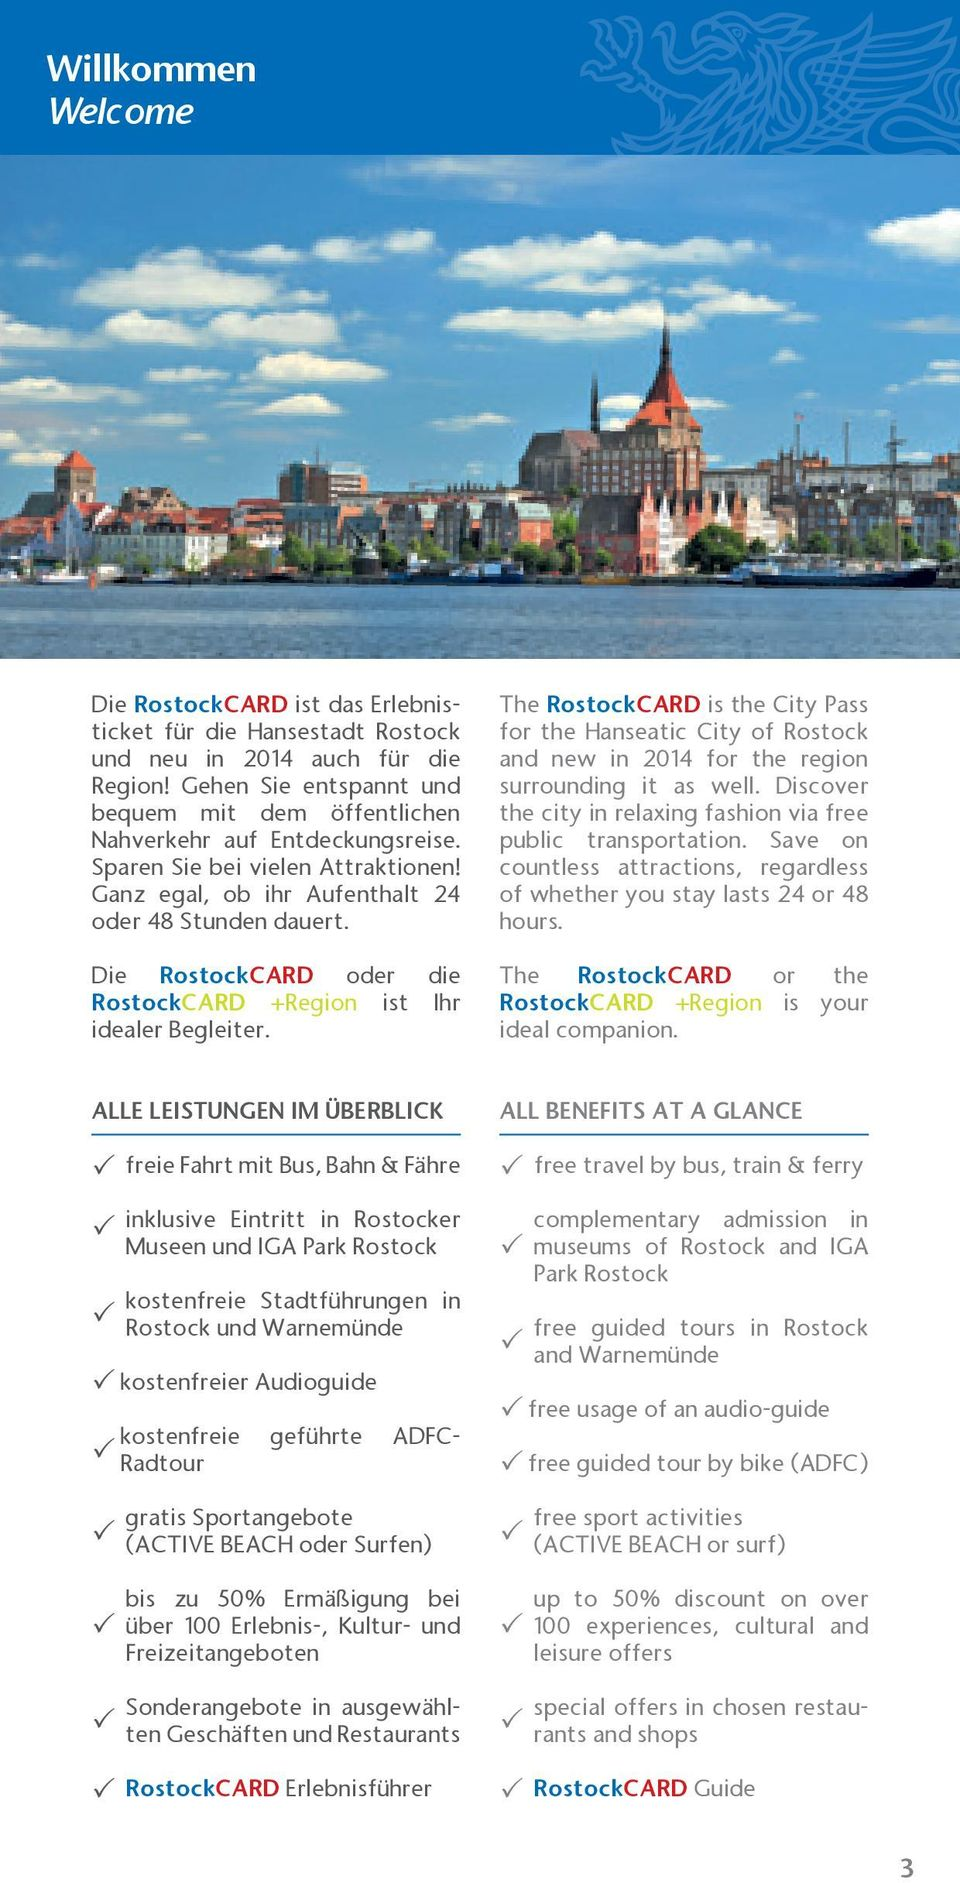 Die RostockCARD oder die RostockCARD +Region ist Ihr idealer Begleiter. The RostockCARD is the City Pass for the Hanseatic City of Rostock and new in 2014 for the region surrounding it as well.